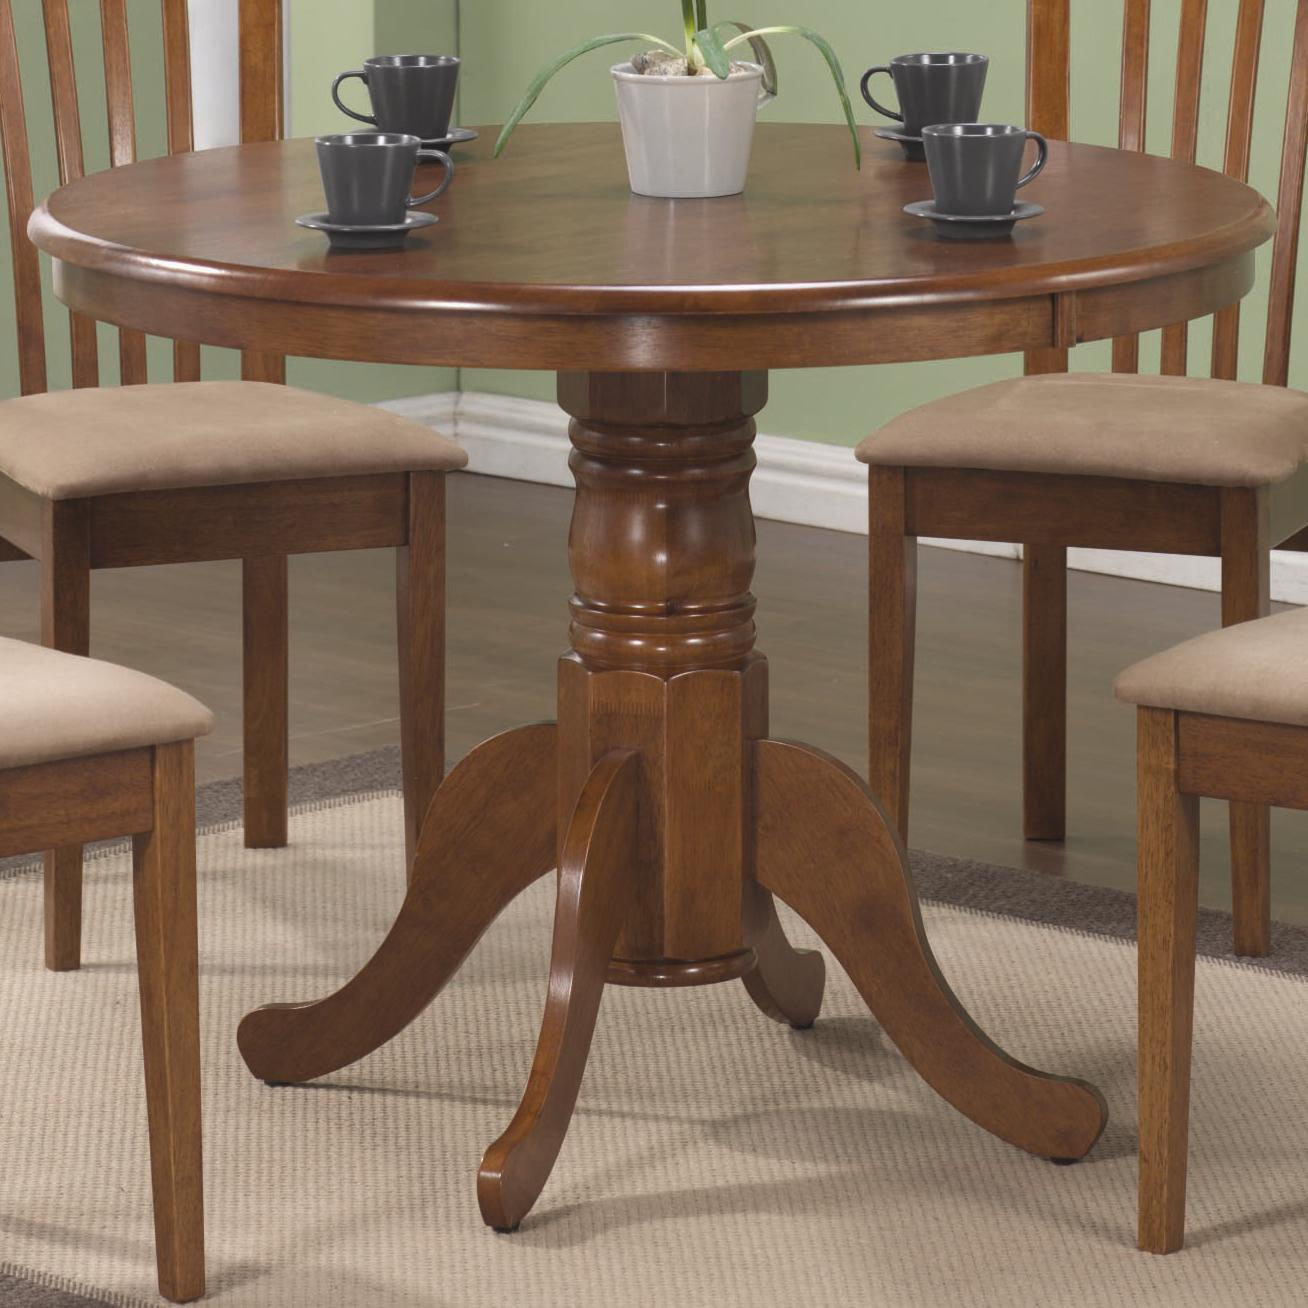 Brannan Round Single Pedestal Dining Table   Quality Within Recent Dawna Pedestal Dining Tables (View 4 of 15)